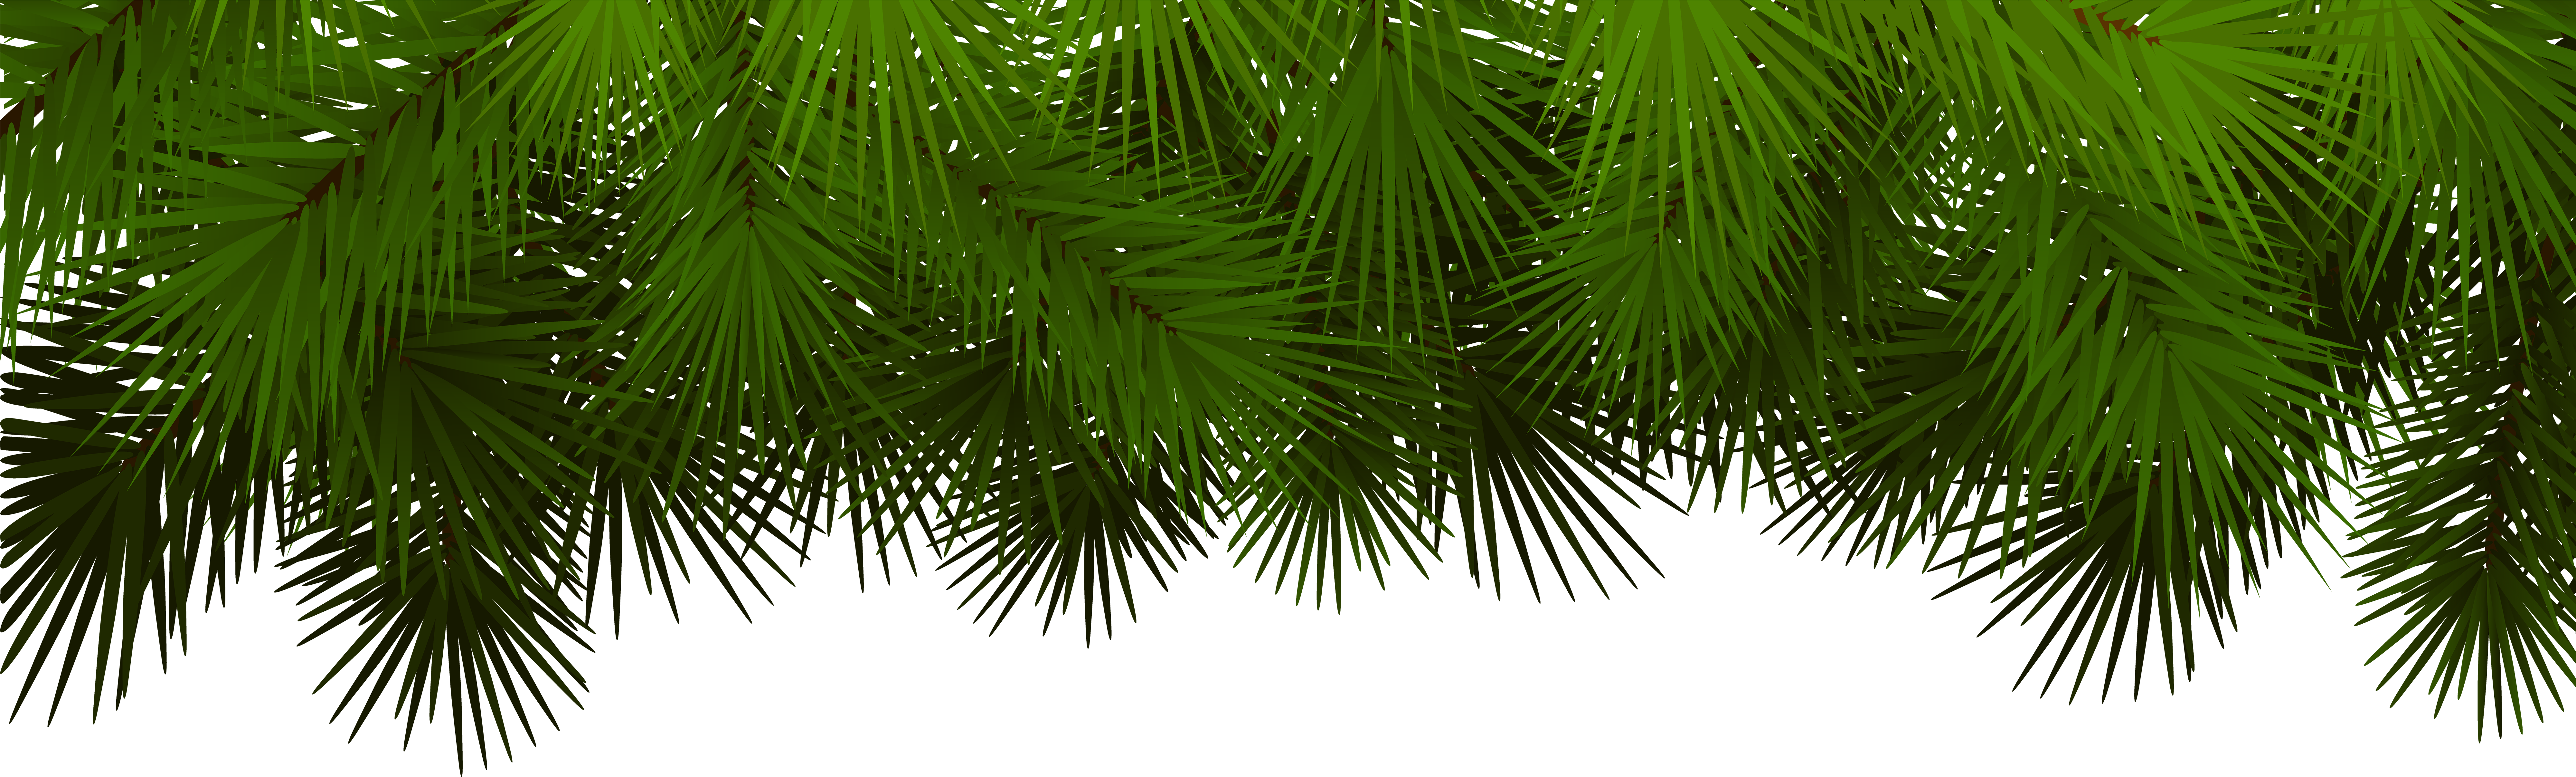 HD Pine Branches For Decoration.